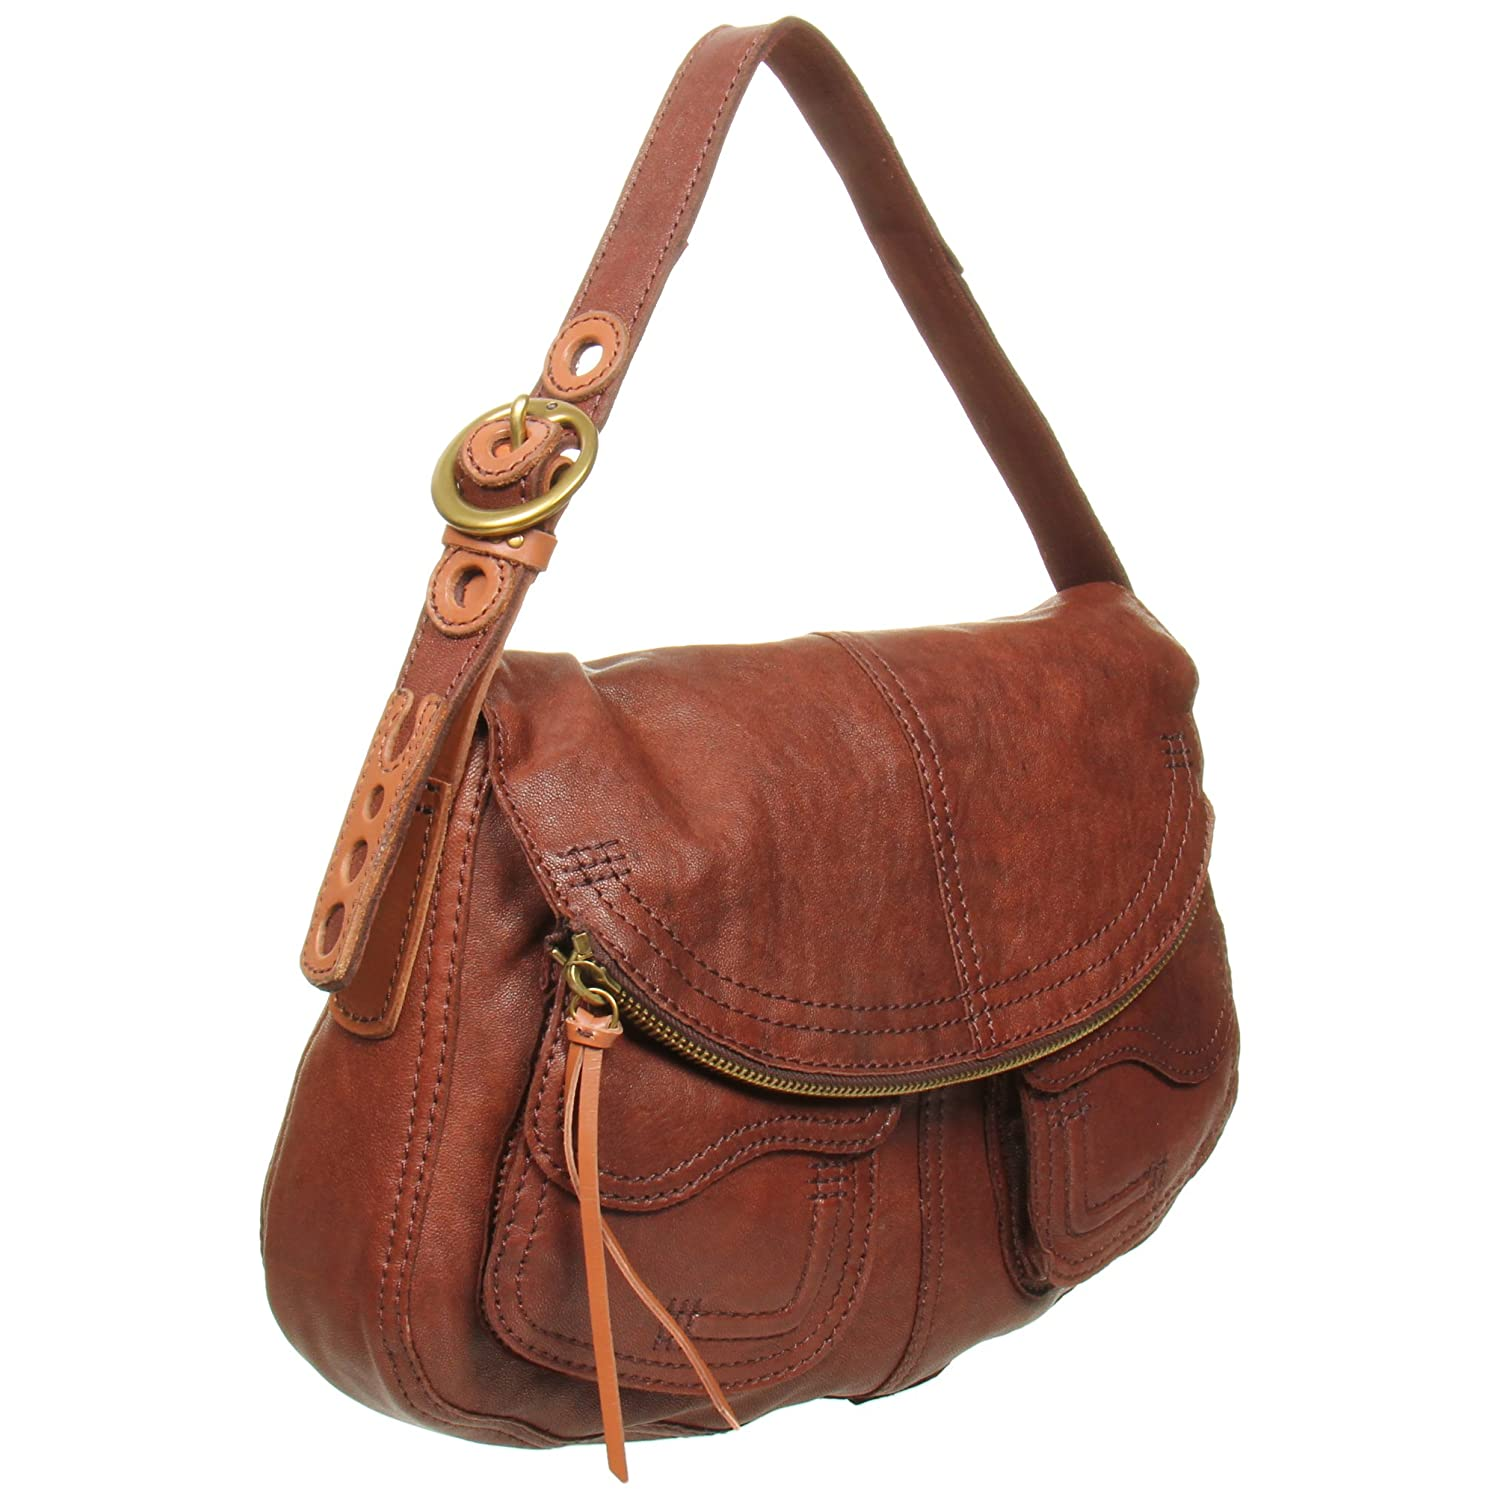 r0nd.tk provides leather handbags items from China top selected Shoulder Bags, Fashion Bags, Bags, Luggages & Accessories suppliers at wholesale prices with worldwide delivery. You can find handbag, Totes leather handbags free shipping, genuine leather handbags and view leather handbags reviews to help you choose.